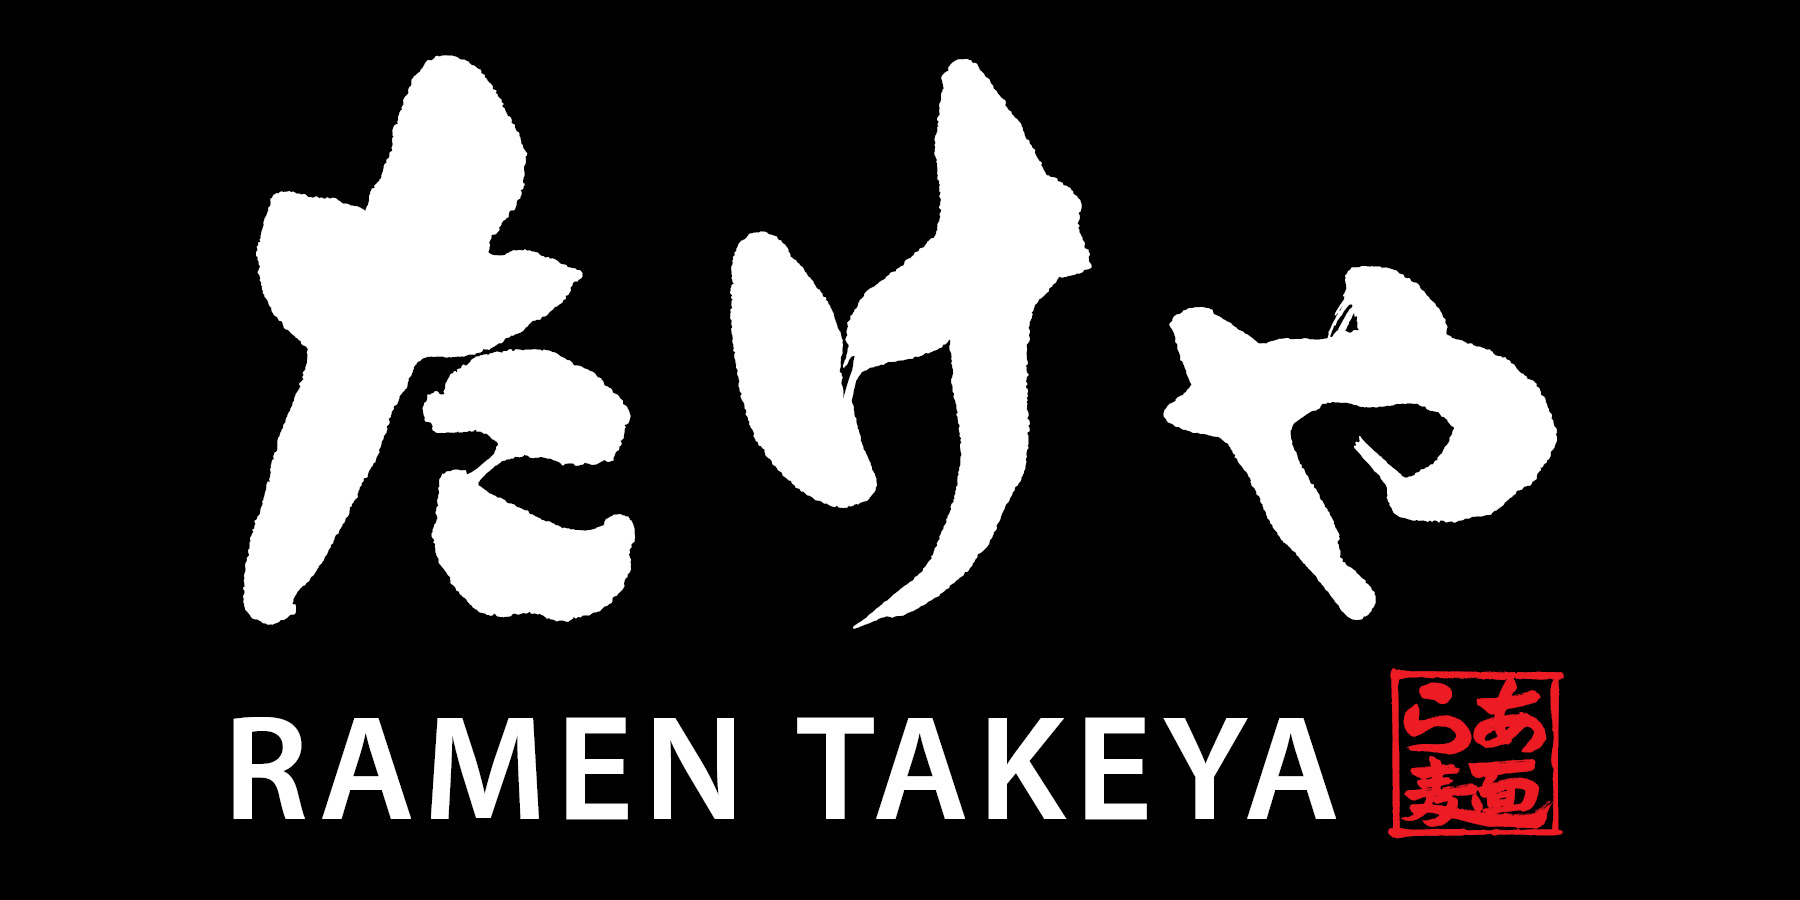 Ramen Takeya Aluminum Sign 04-18.jpg